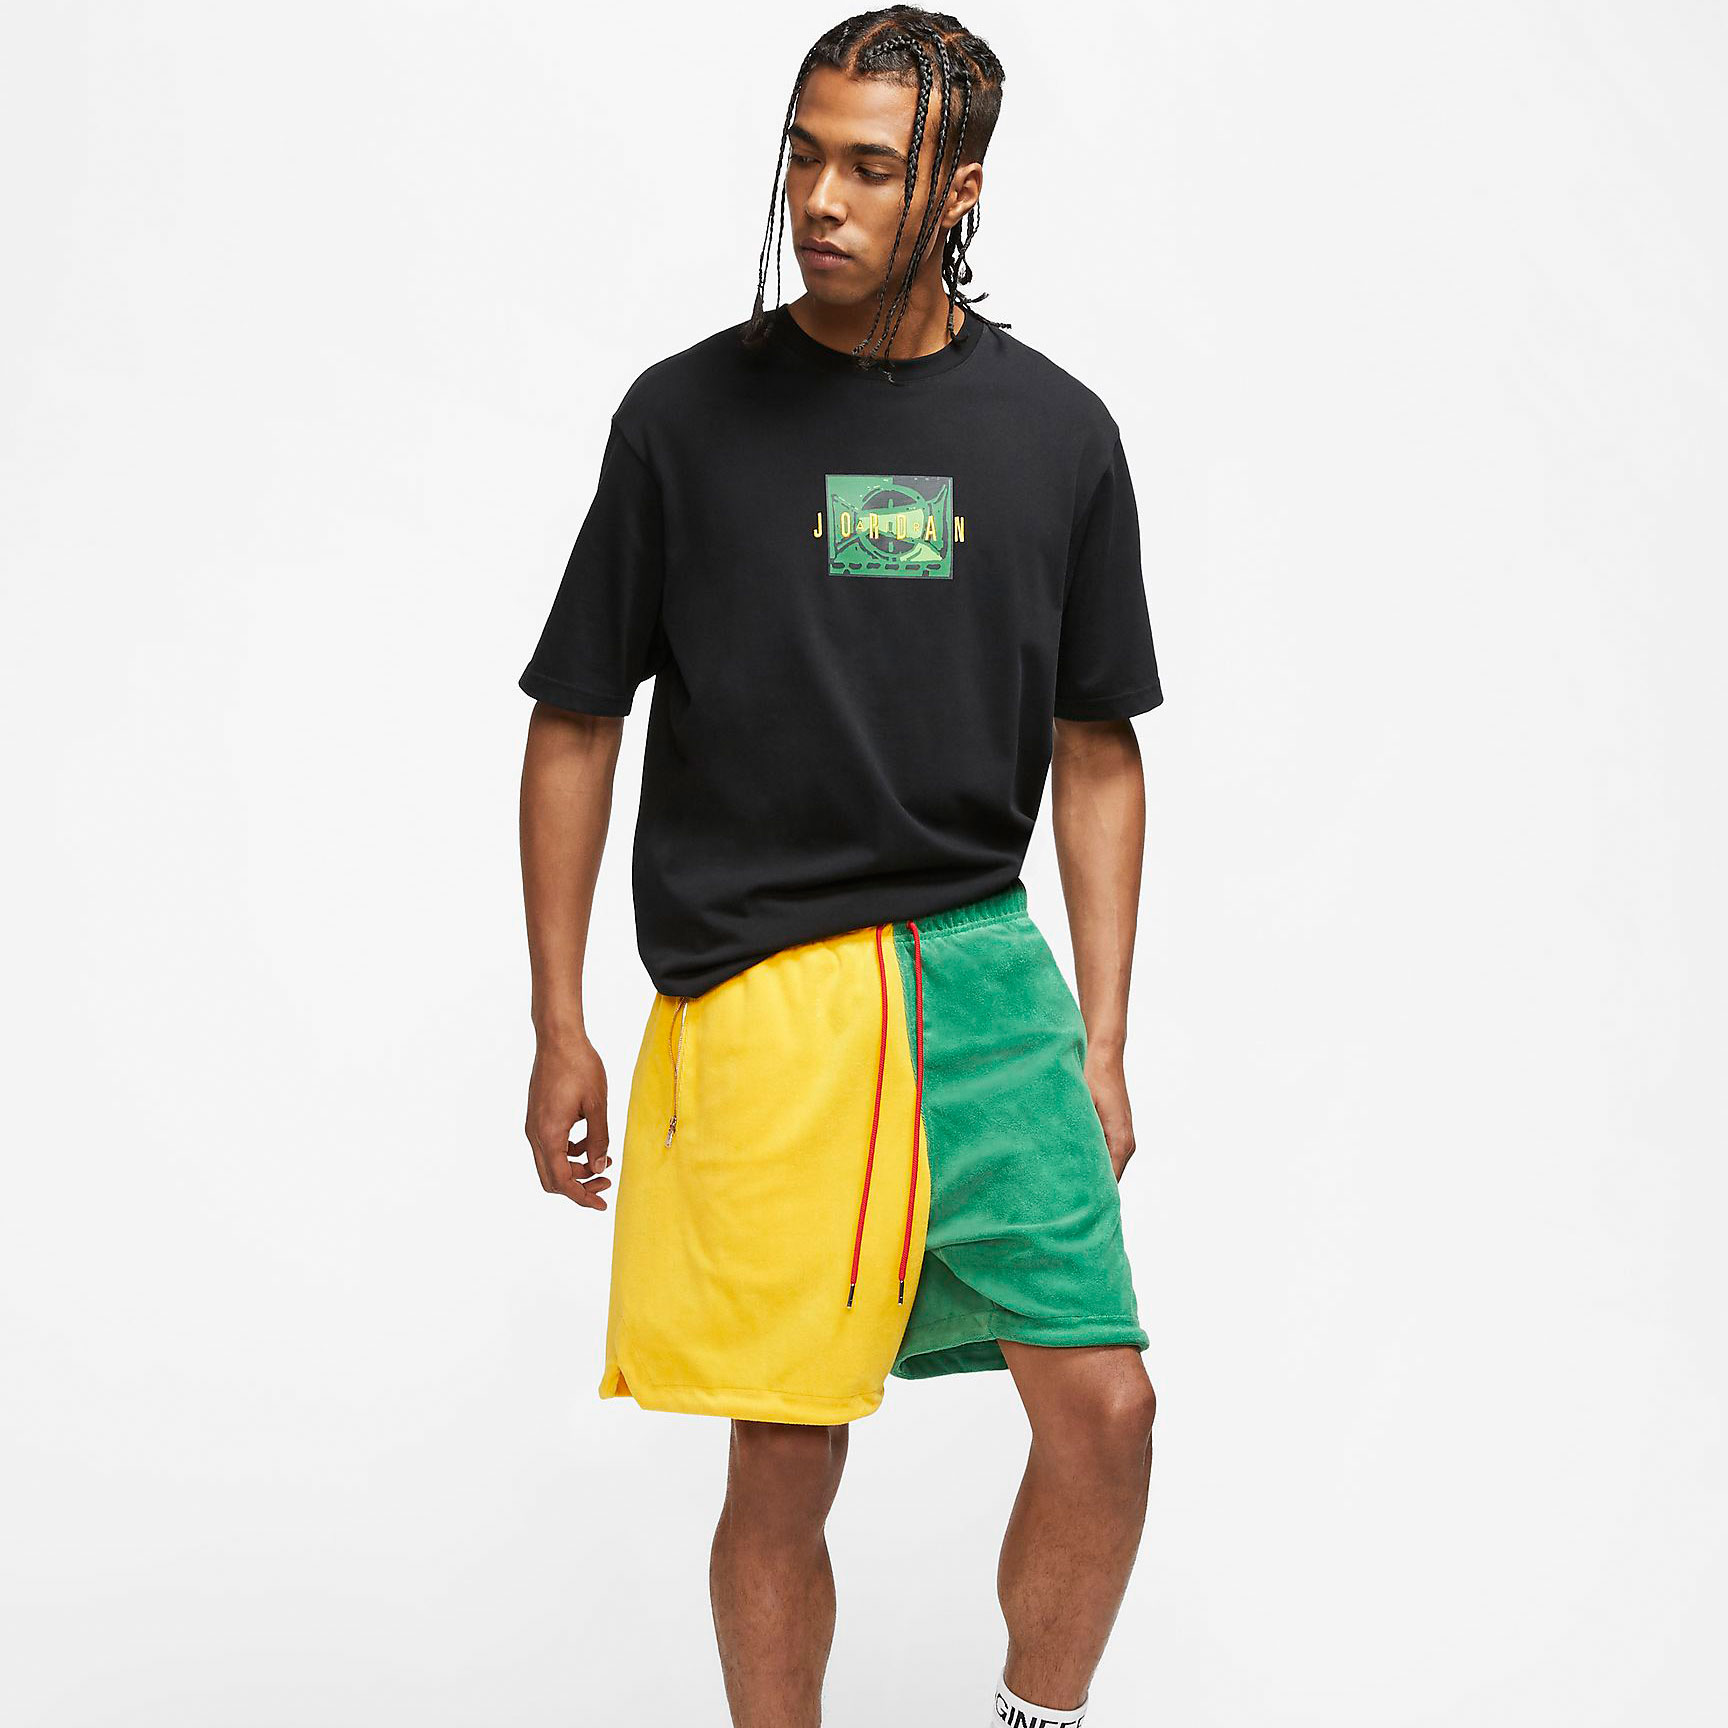 air-jordan-3-animal-instinct-2-shorts-shirt-outfit